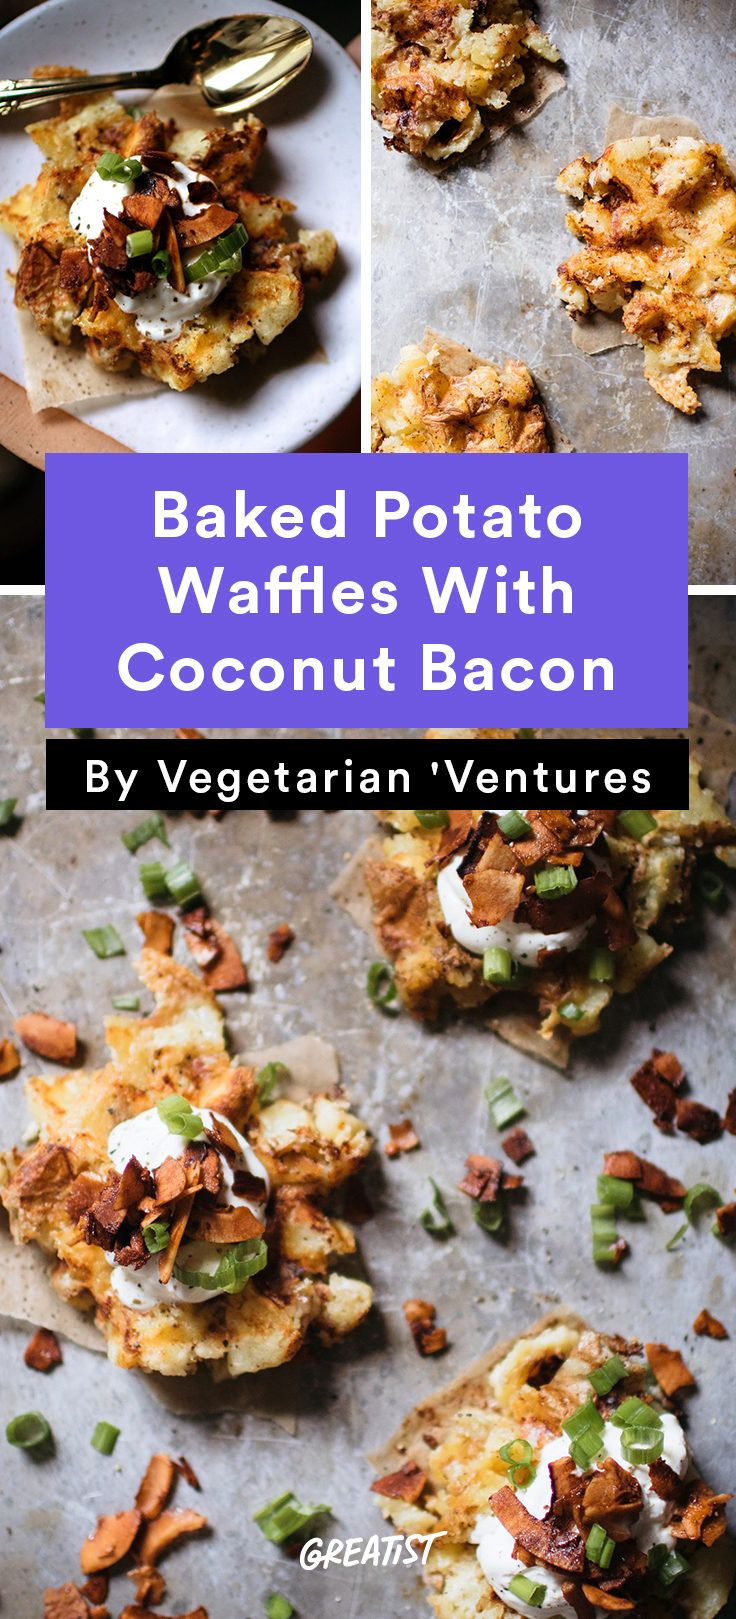 7. Baked Potato Waffles With Coconut Bacon #healthy #vegetarian #dinner #recipes http://greatist.com/eat/healthy-vegetarian-dinner-recipes